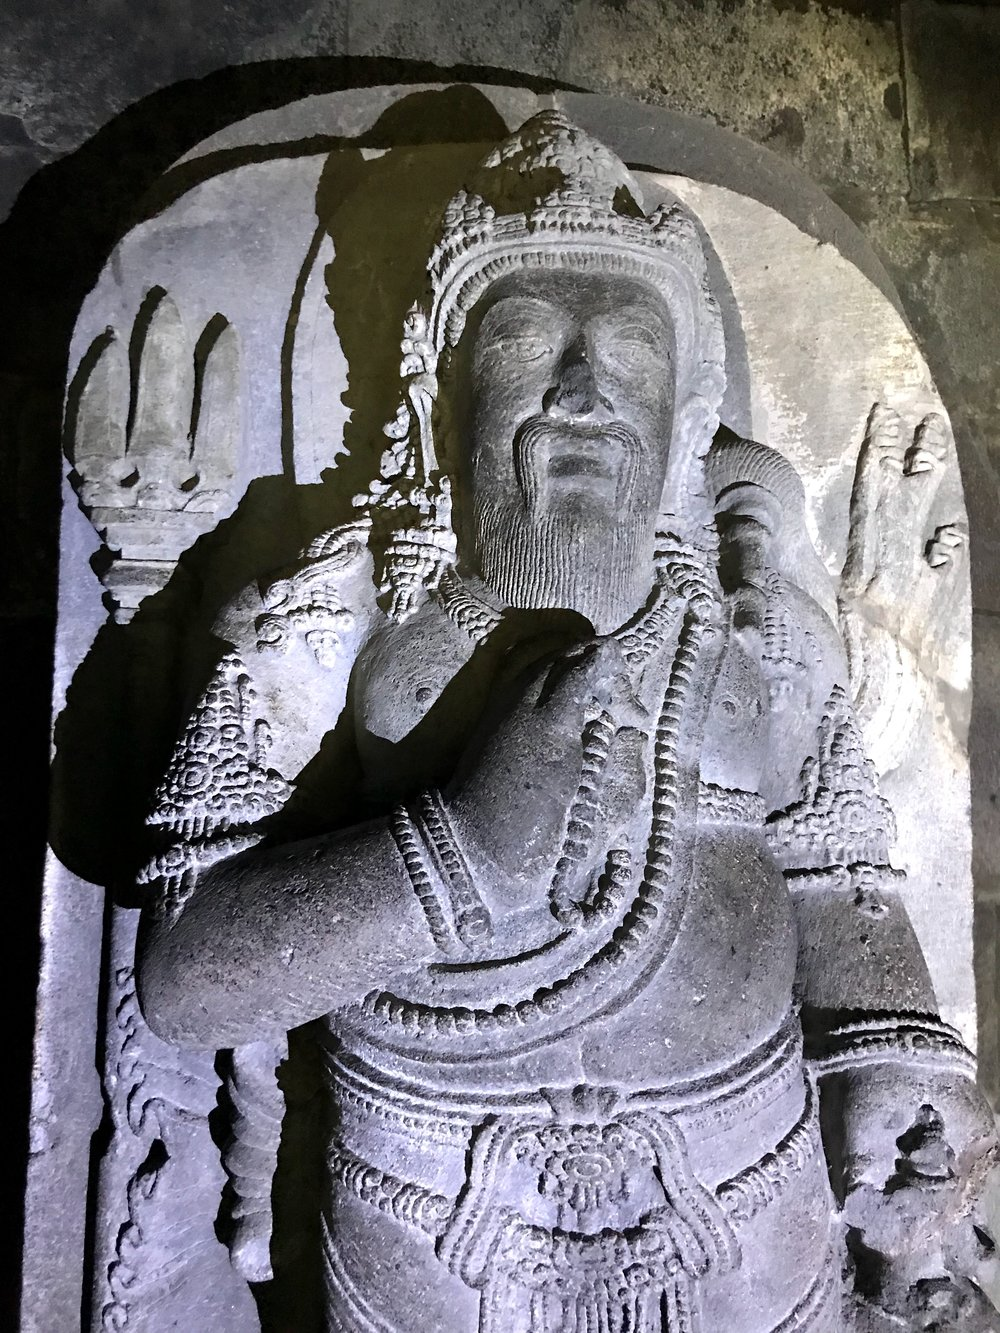 A statue of the dwarf hermit Agastya with his trident